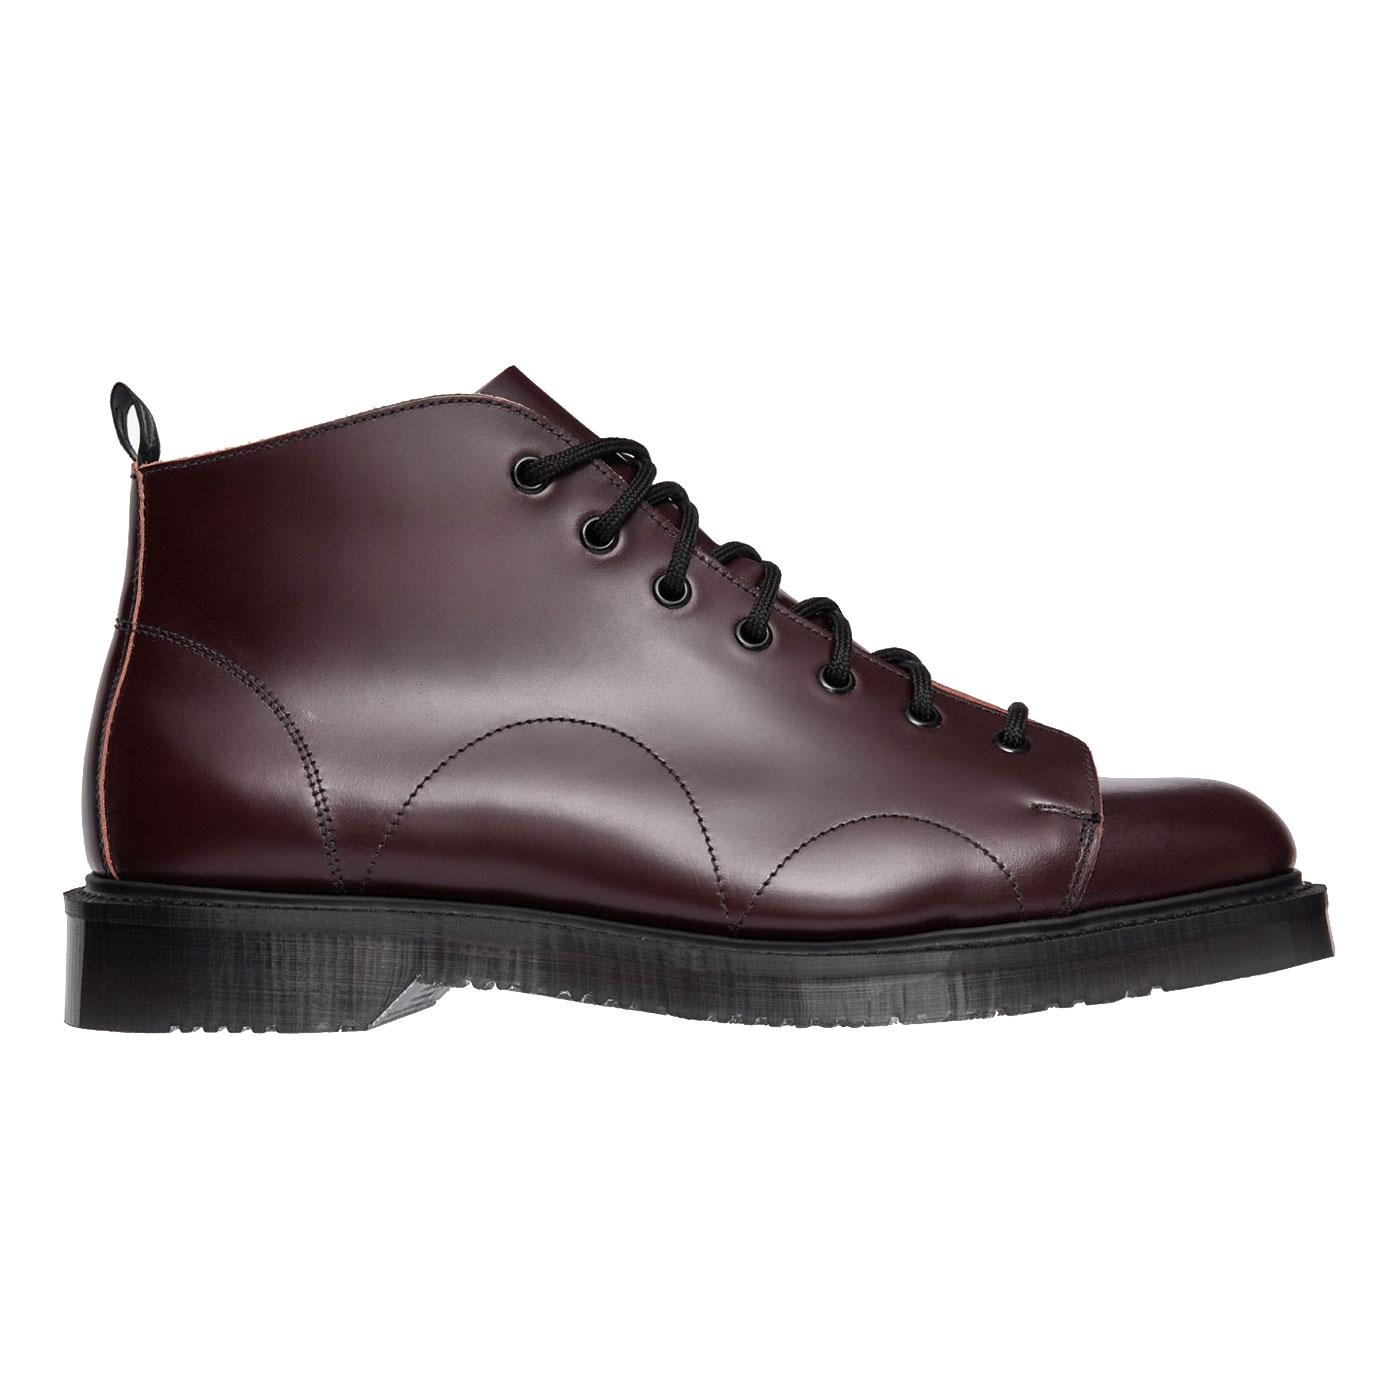 FRED PERRY X GEORGE COX Retro Mod Monkey Boots